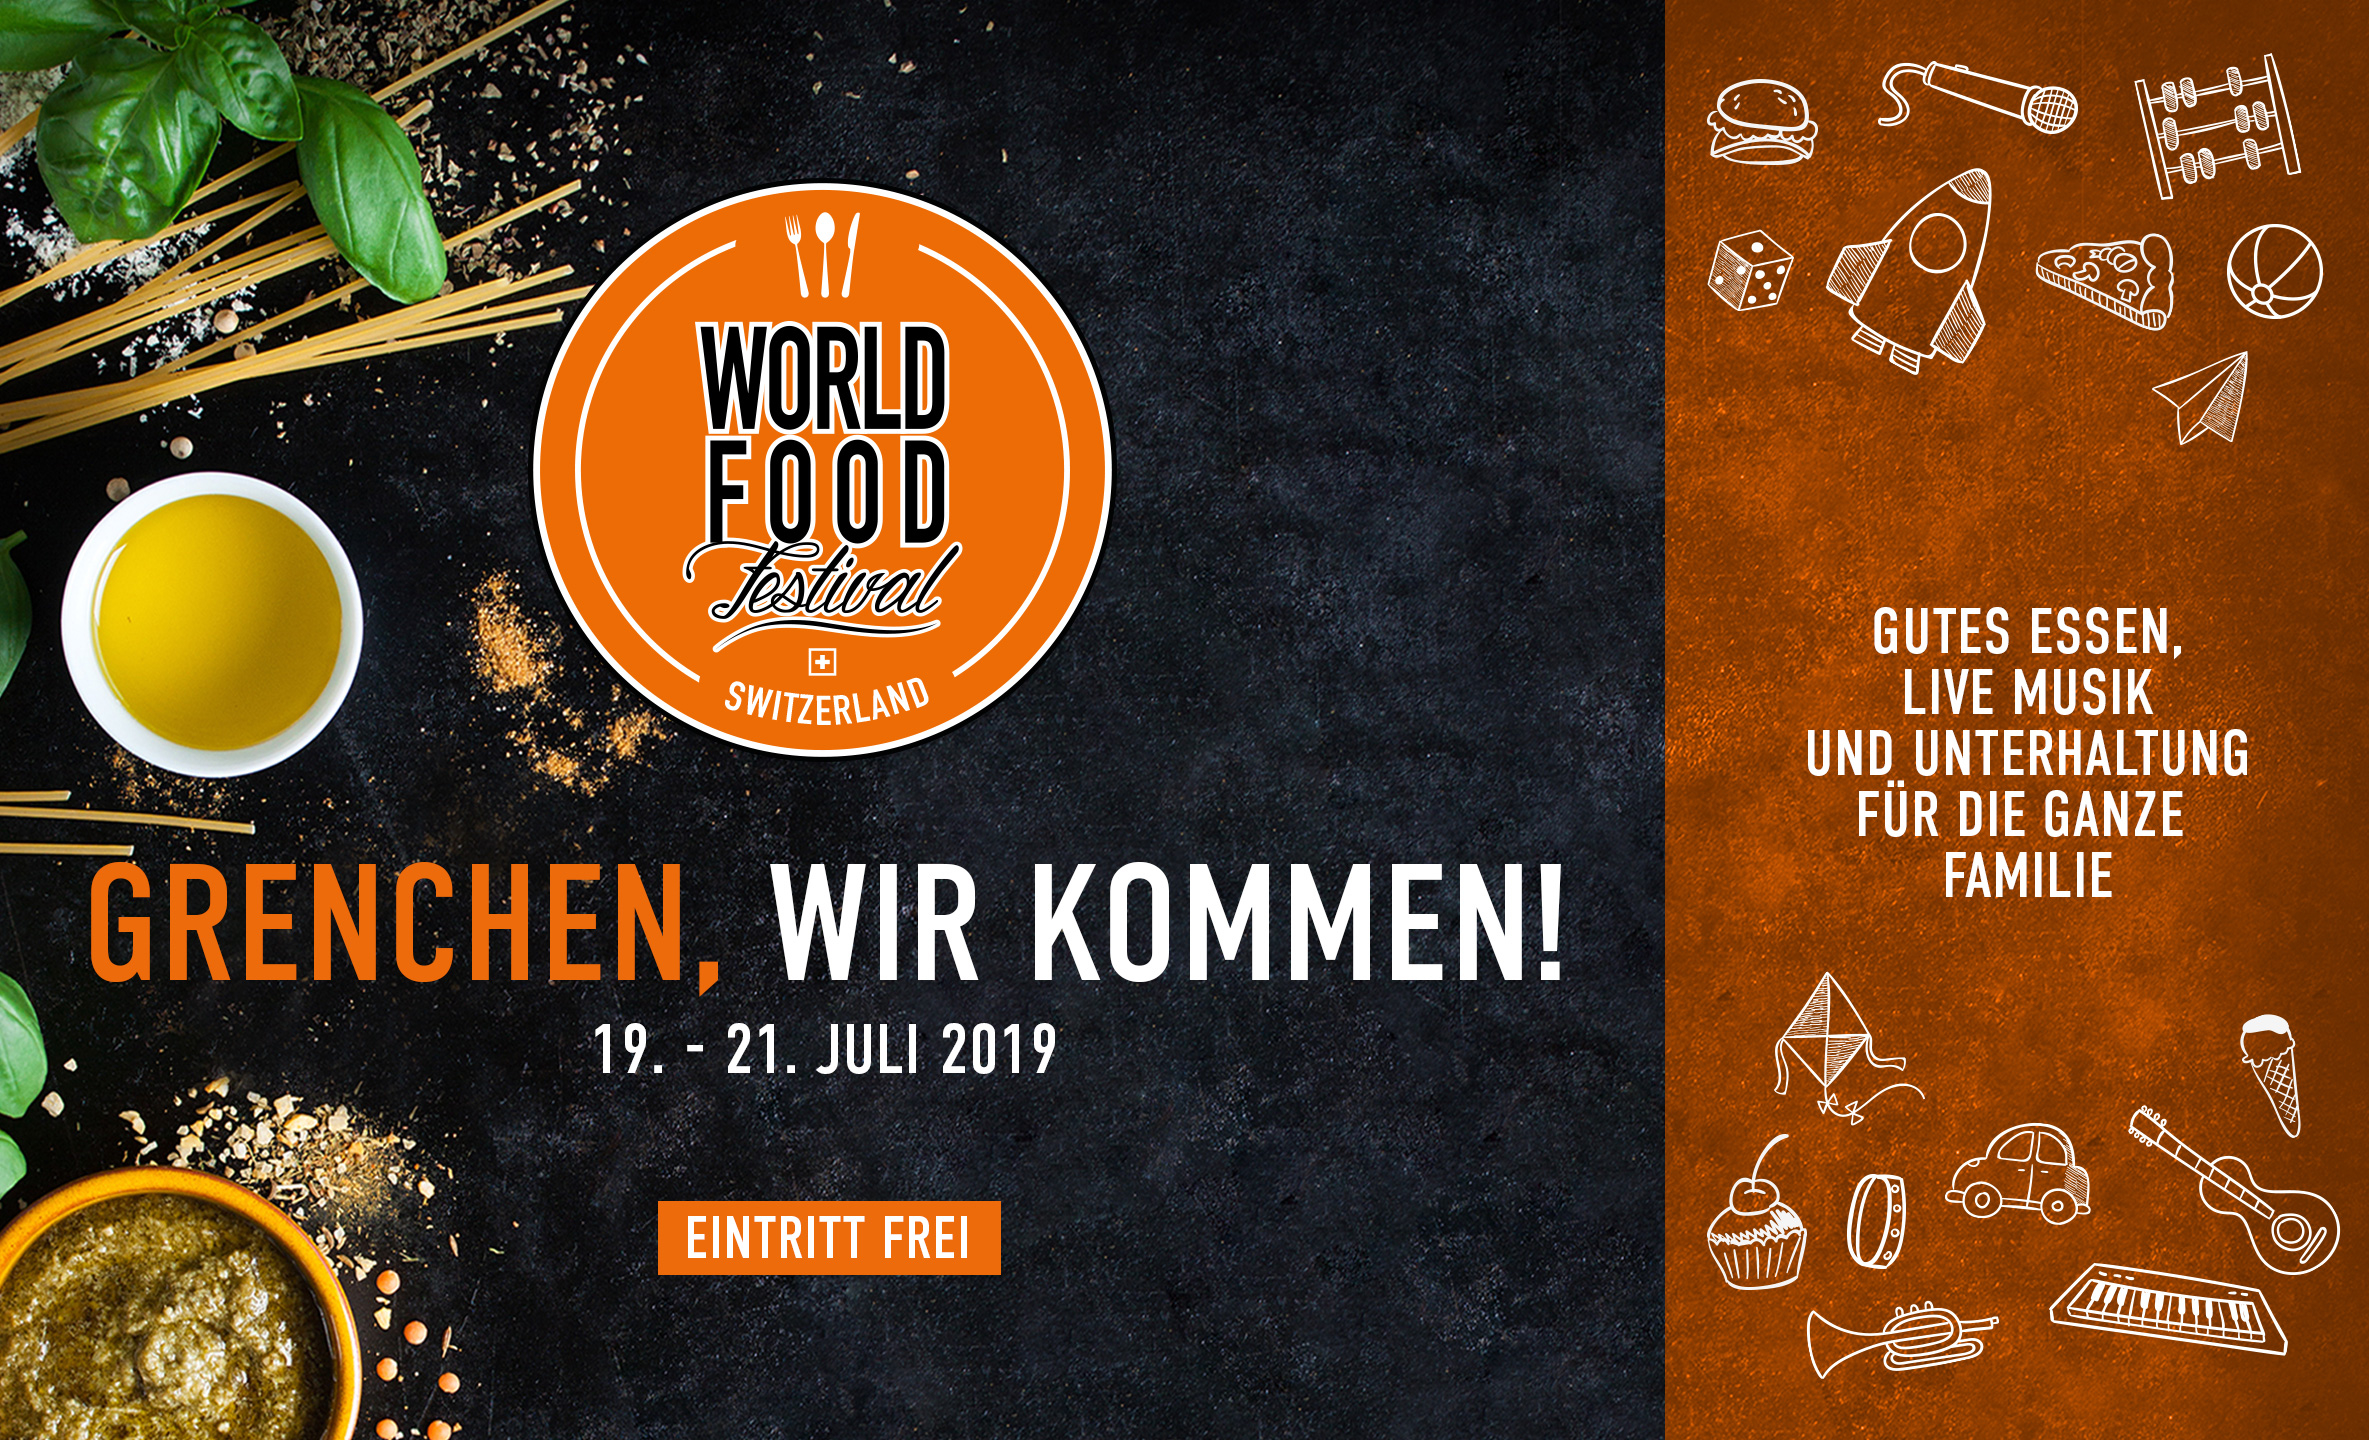 World Food Festival Grenchen